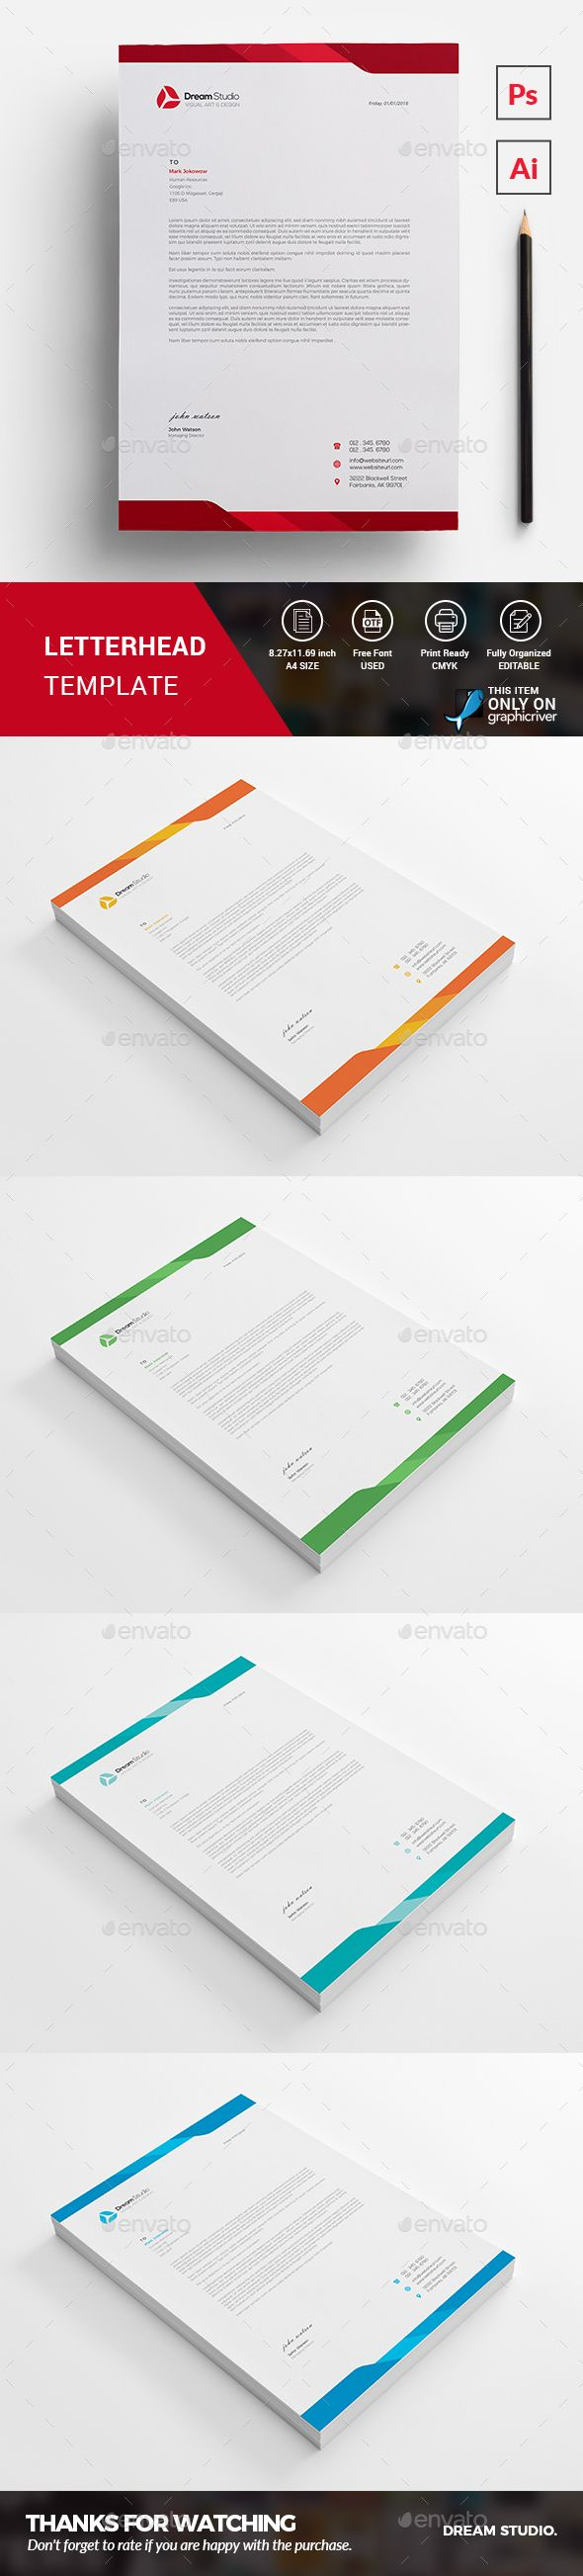 #Letterhead Template - Stationery Print Templates Download here:   https://graphicriver.net/item/letterhead-template/20251986?ref=suz_562geid